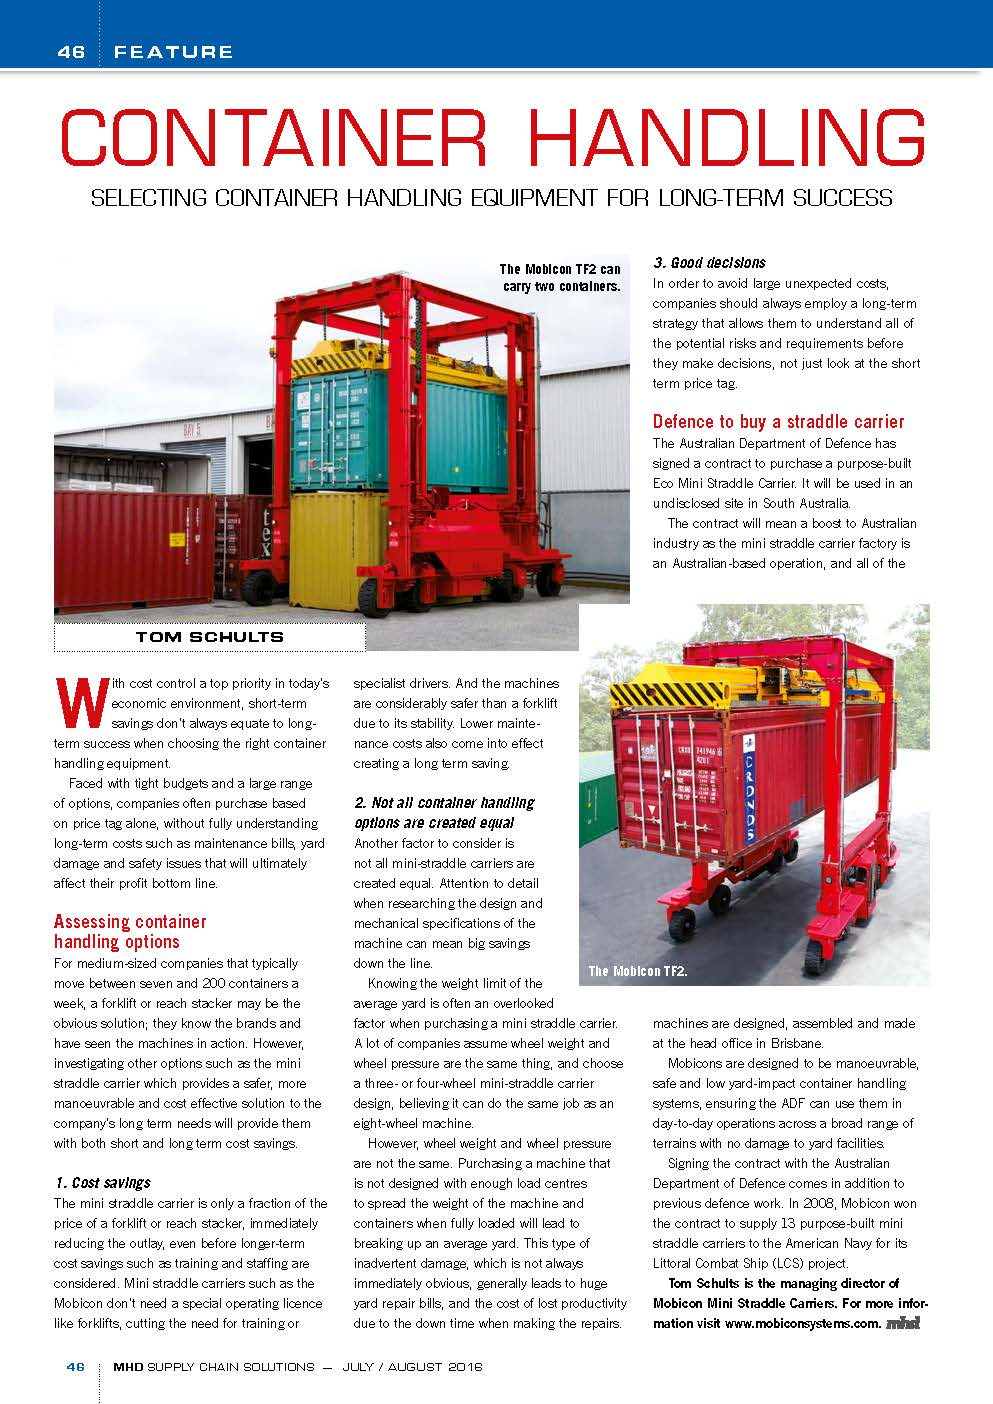 Selecting container handling equipment for long term success